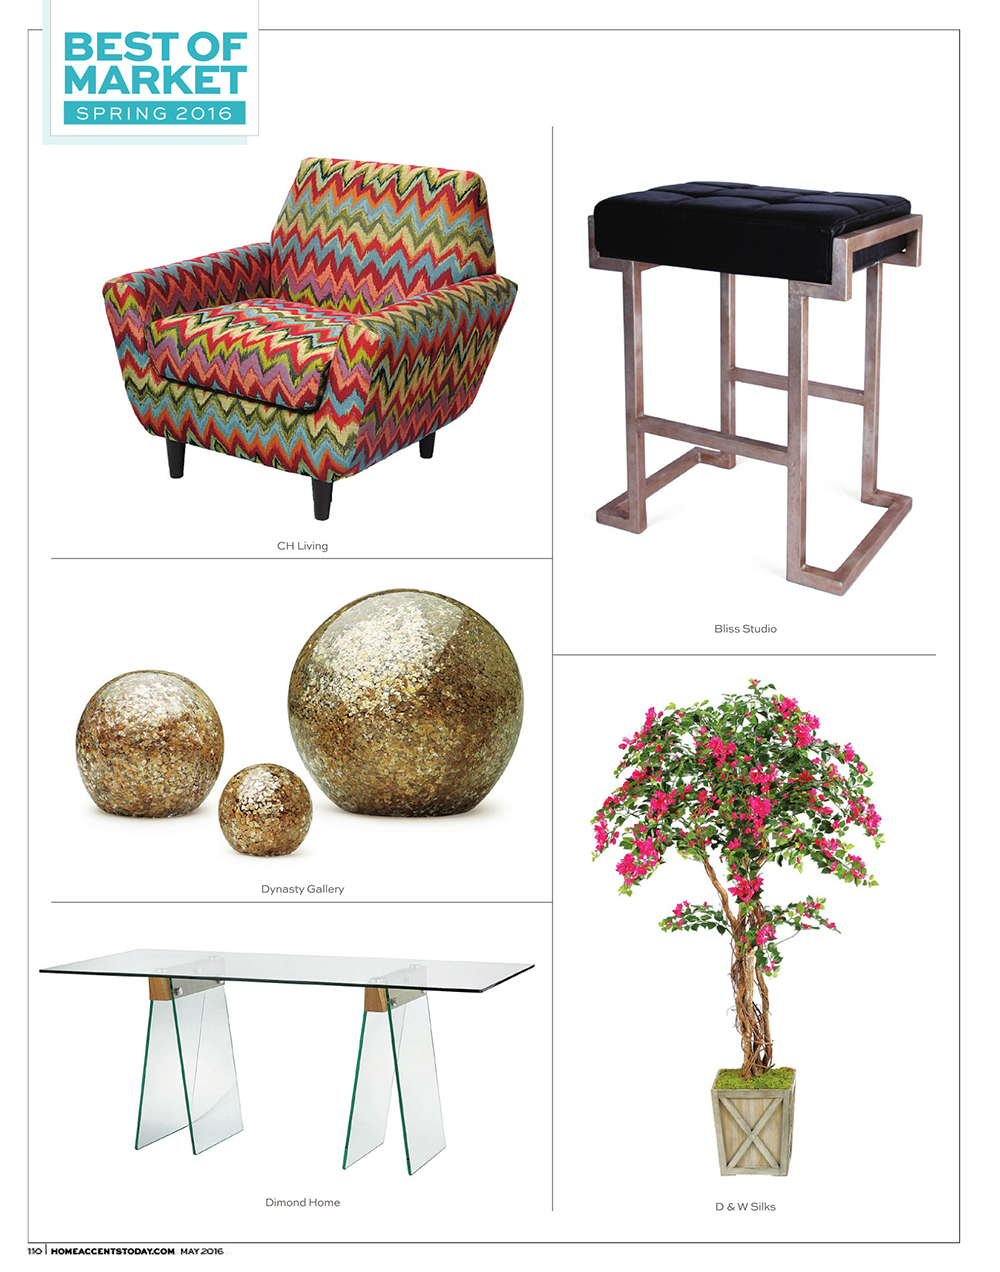 Home Accents Today - Best of Market Spring 2016